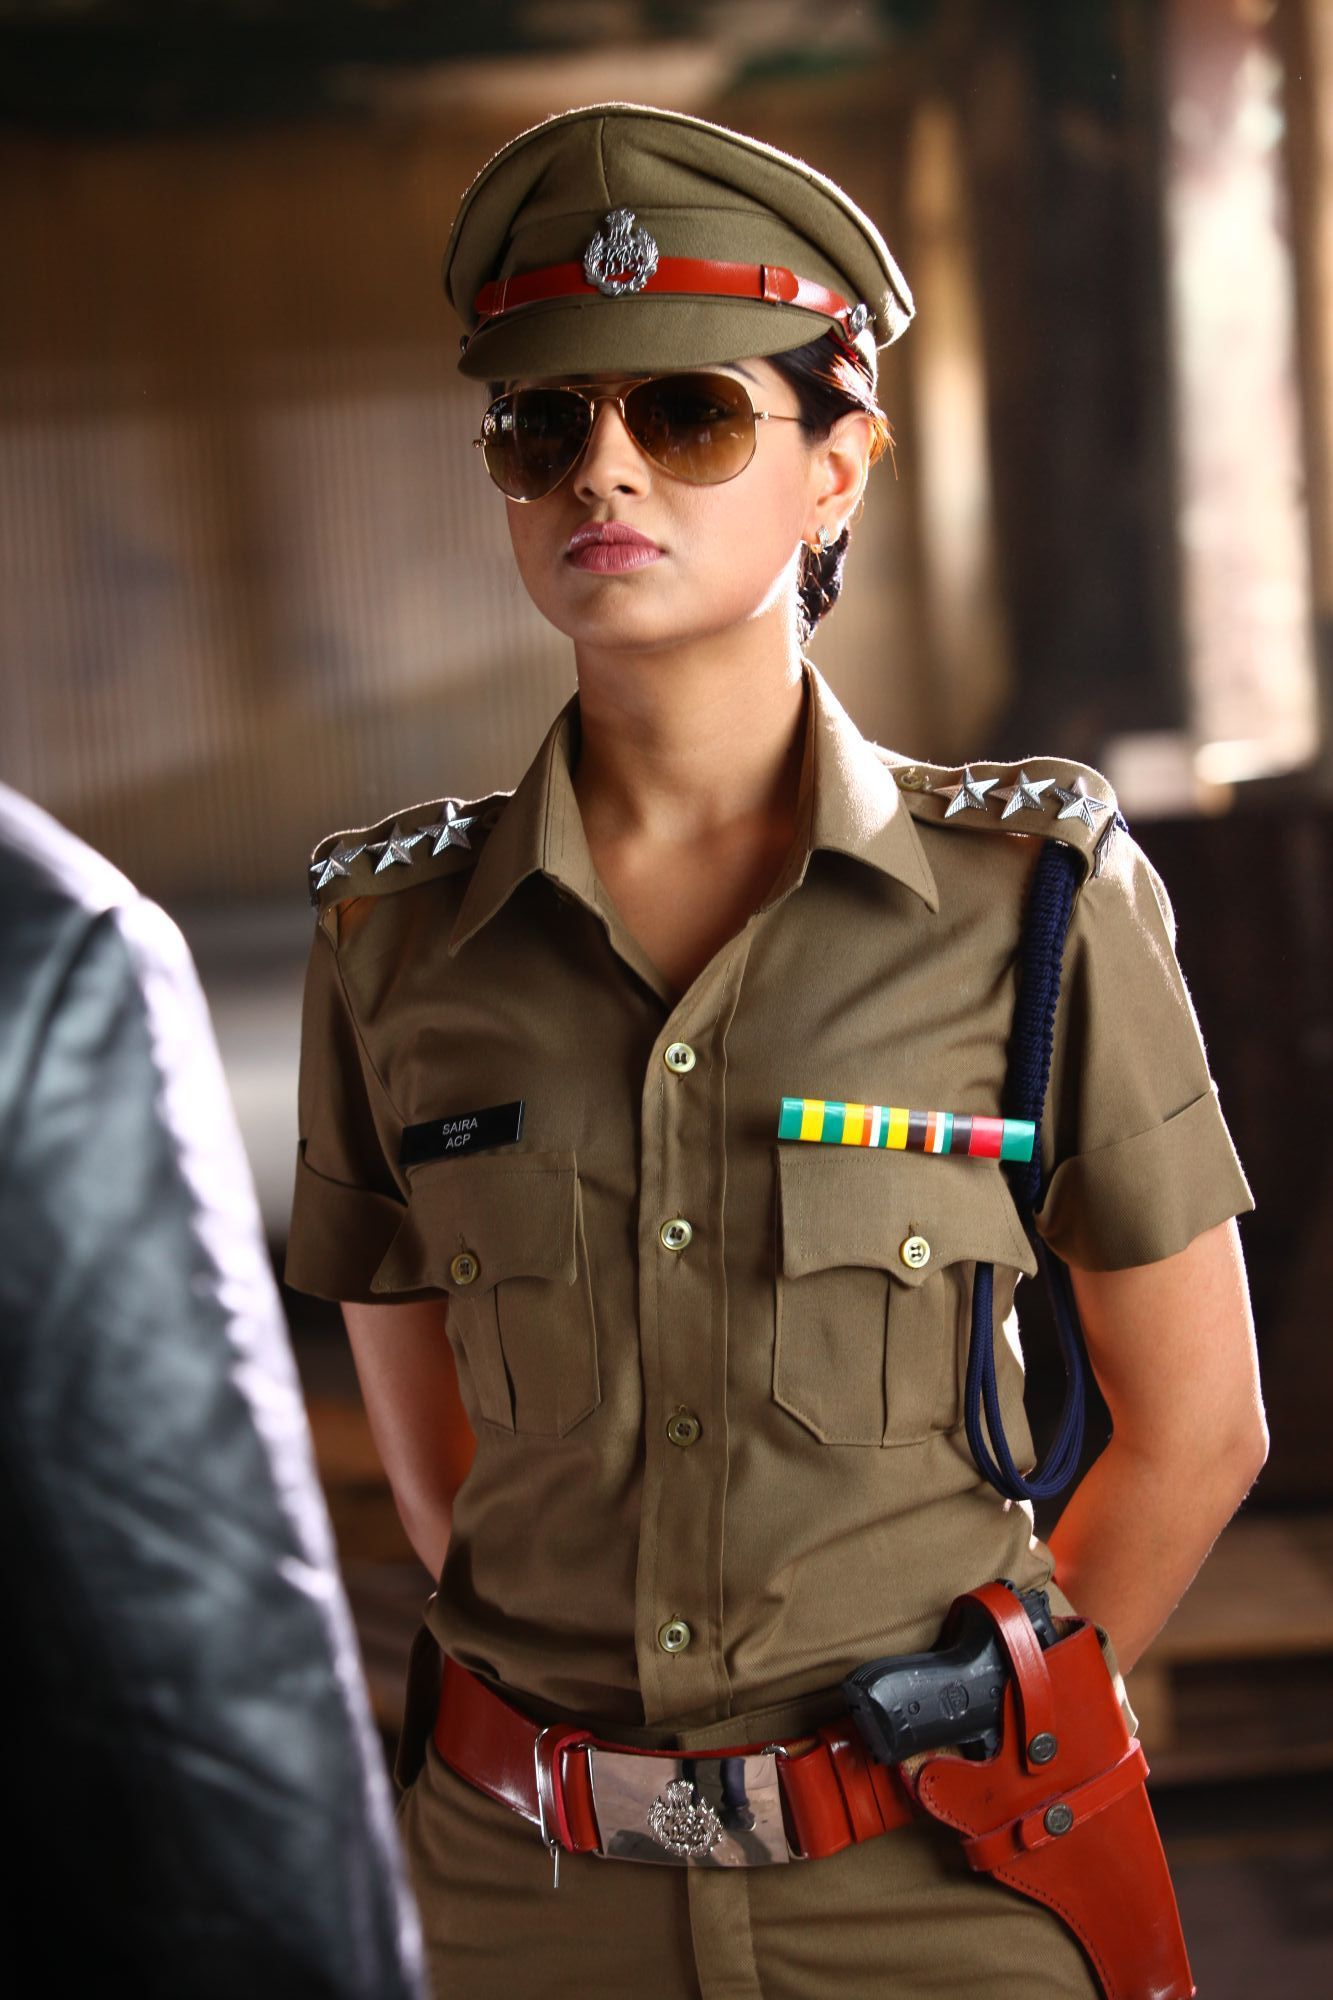 Thigar Movie Stills 11 Jpg With Images Police Outfit